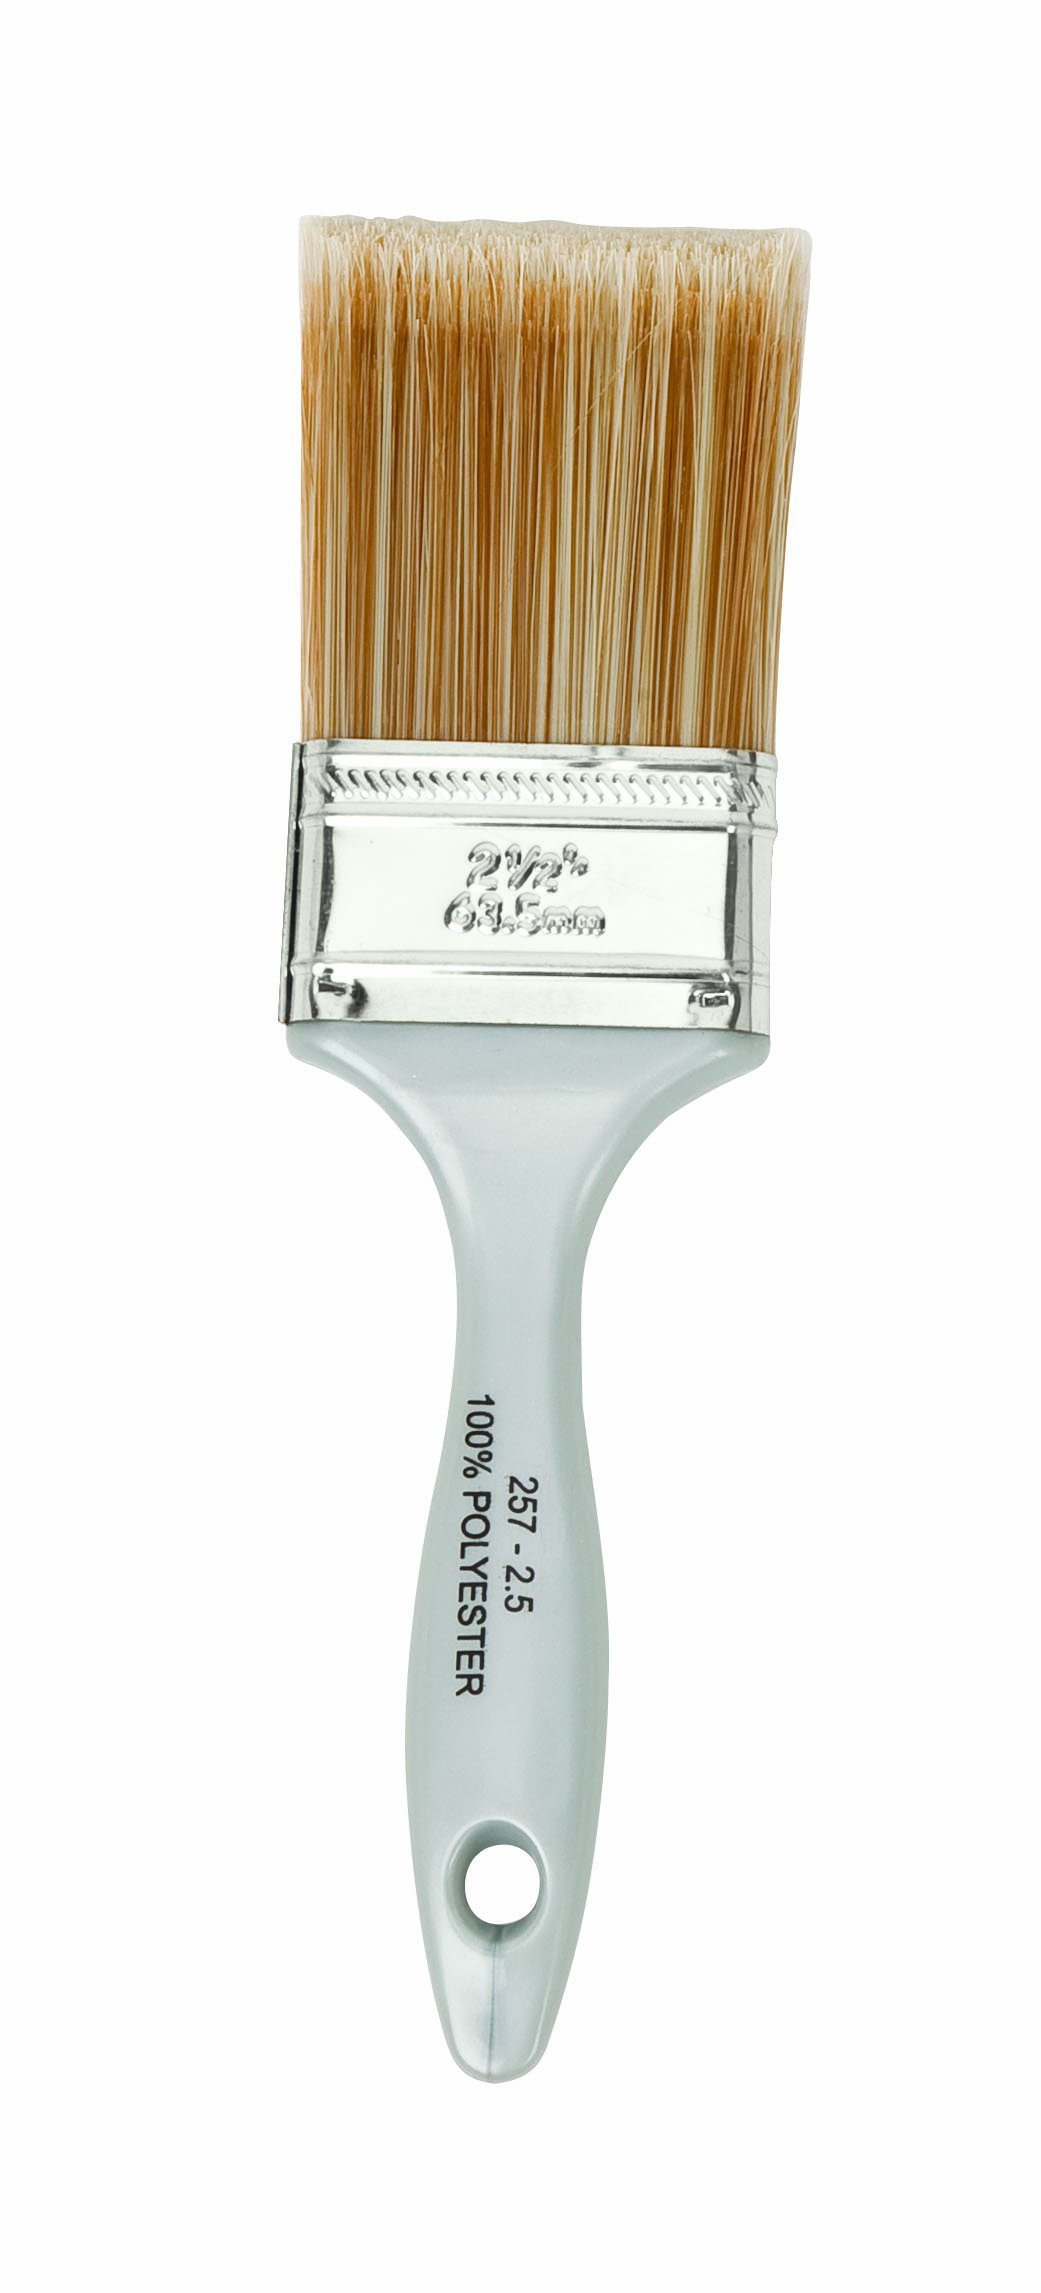 Magnolia Brush 257-4 Low Cost Paint Brush, Polyester Bristles, 4'' Width (Case of 12)